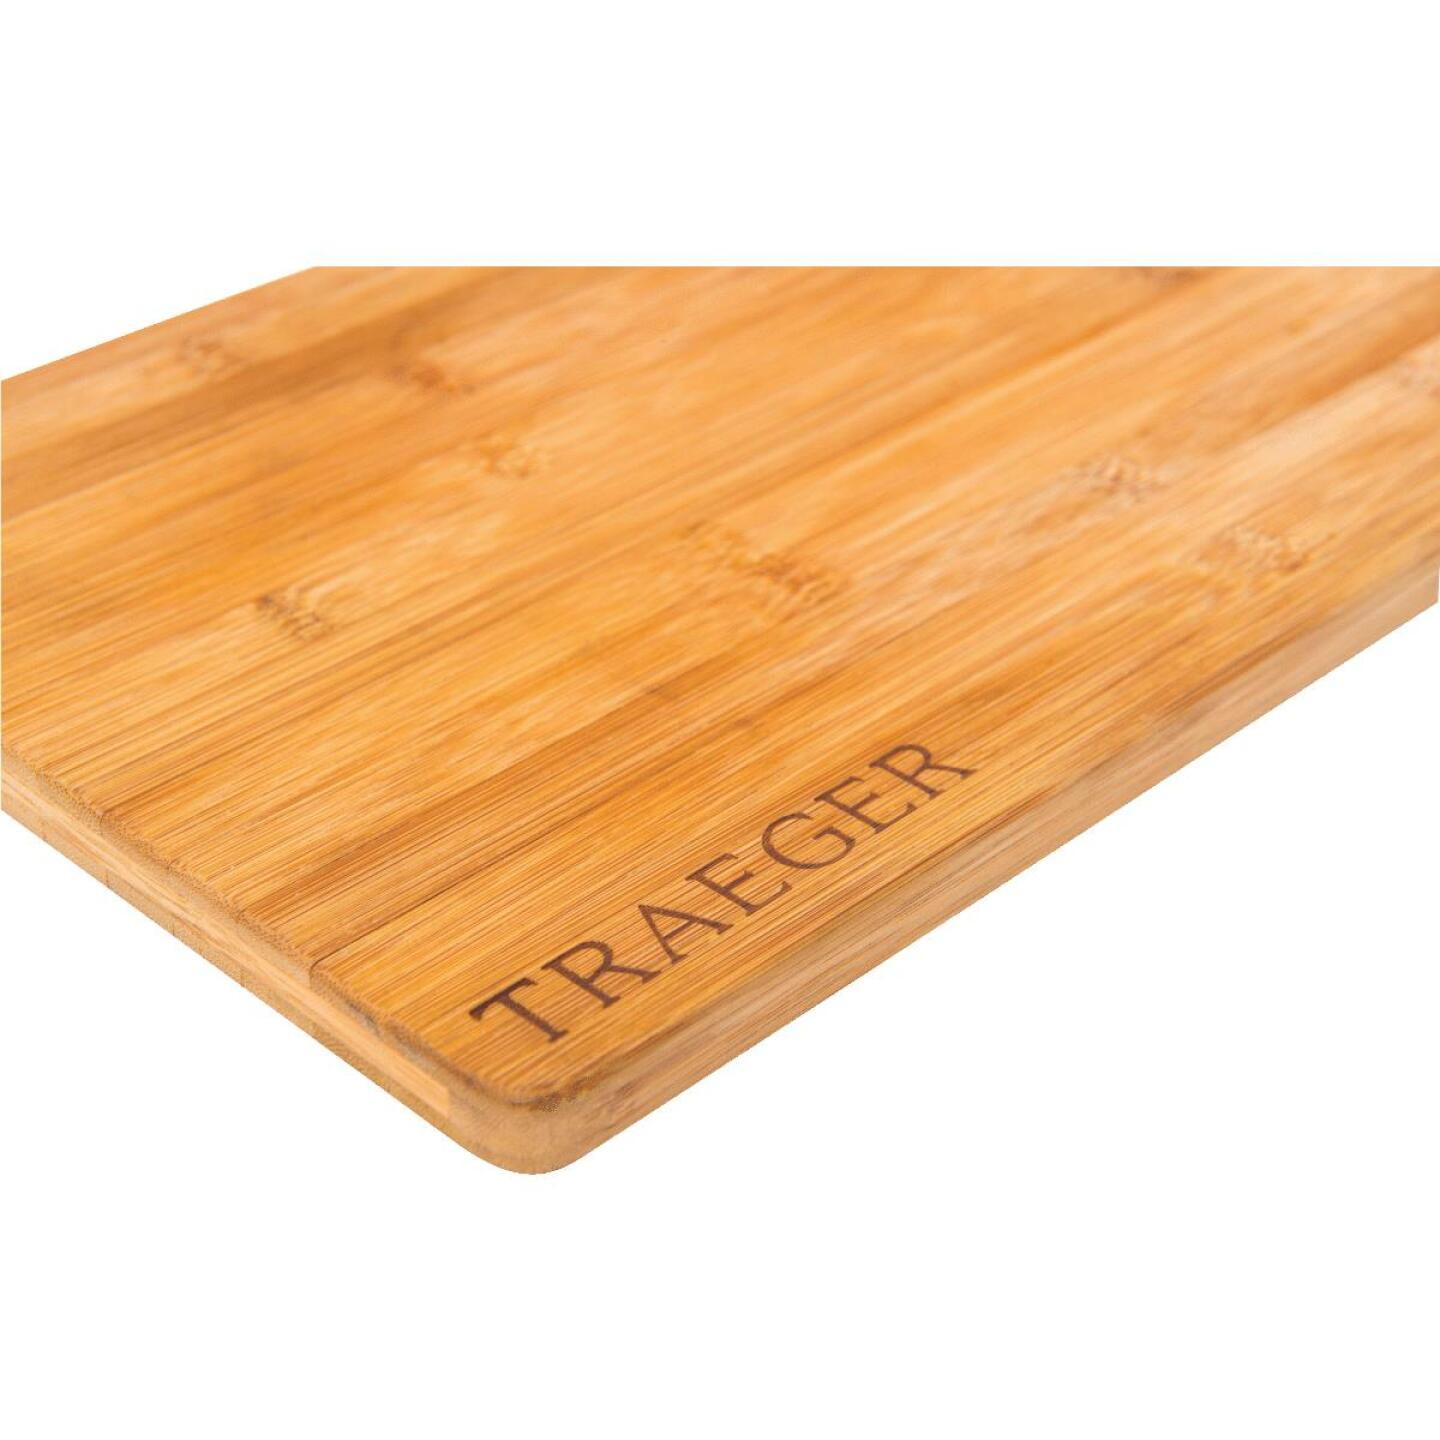 Traeger 9.5 In. x 13.5 In. Magnetic Bamboo Cutting Board Image 1